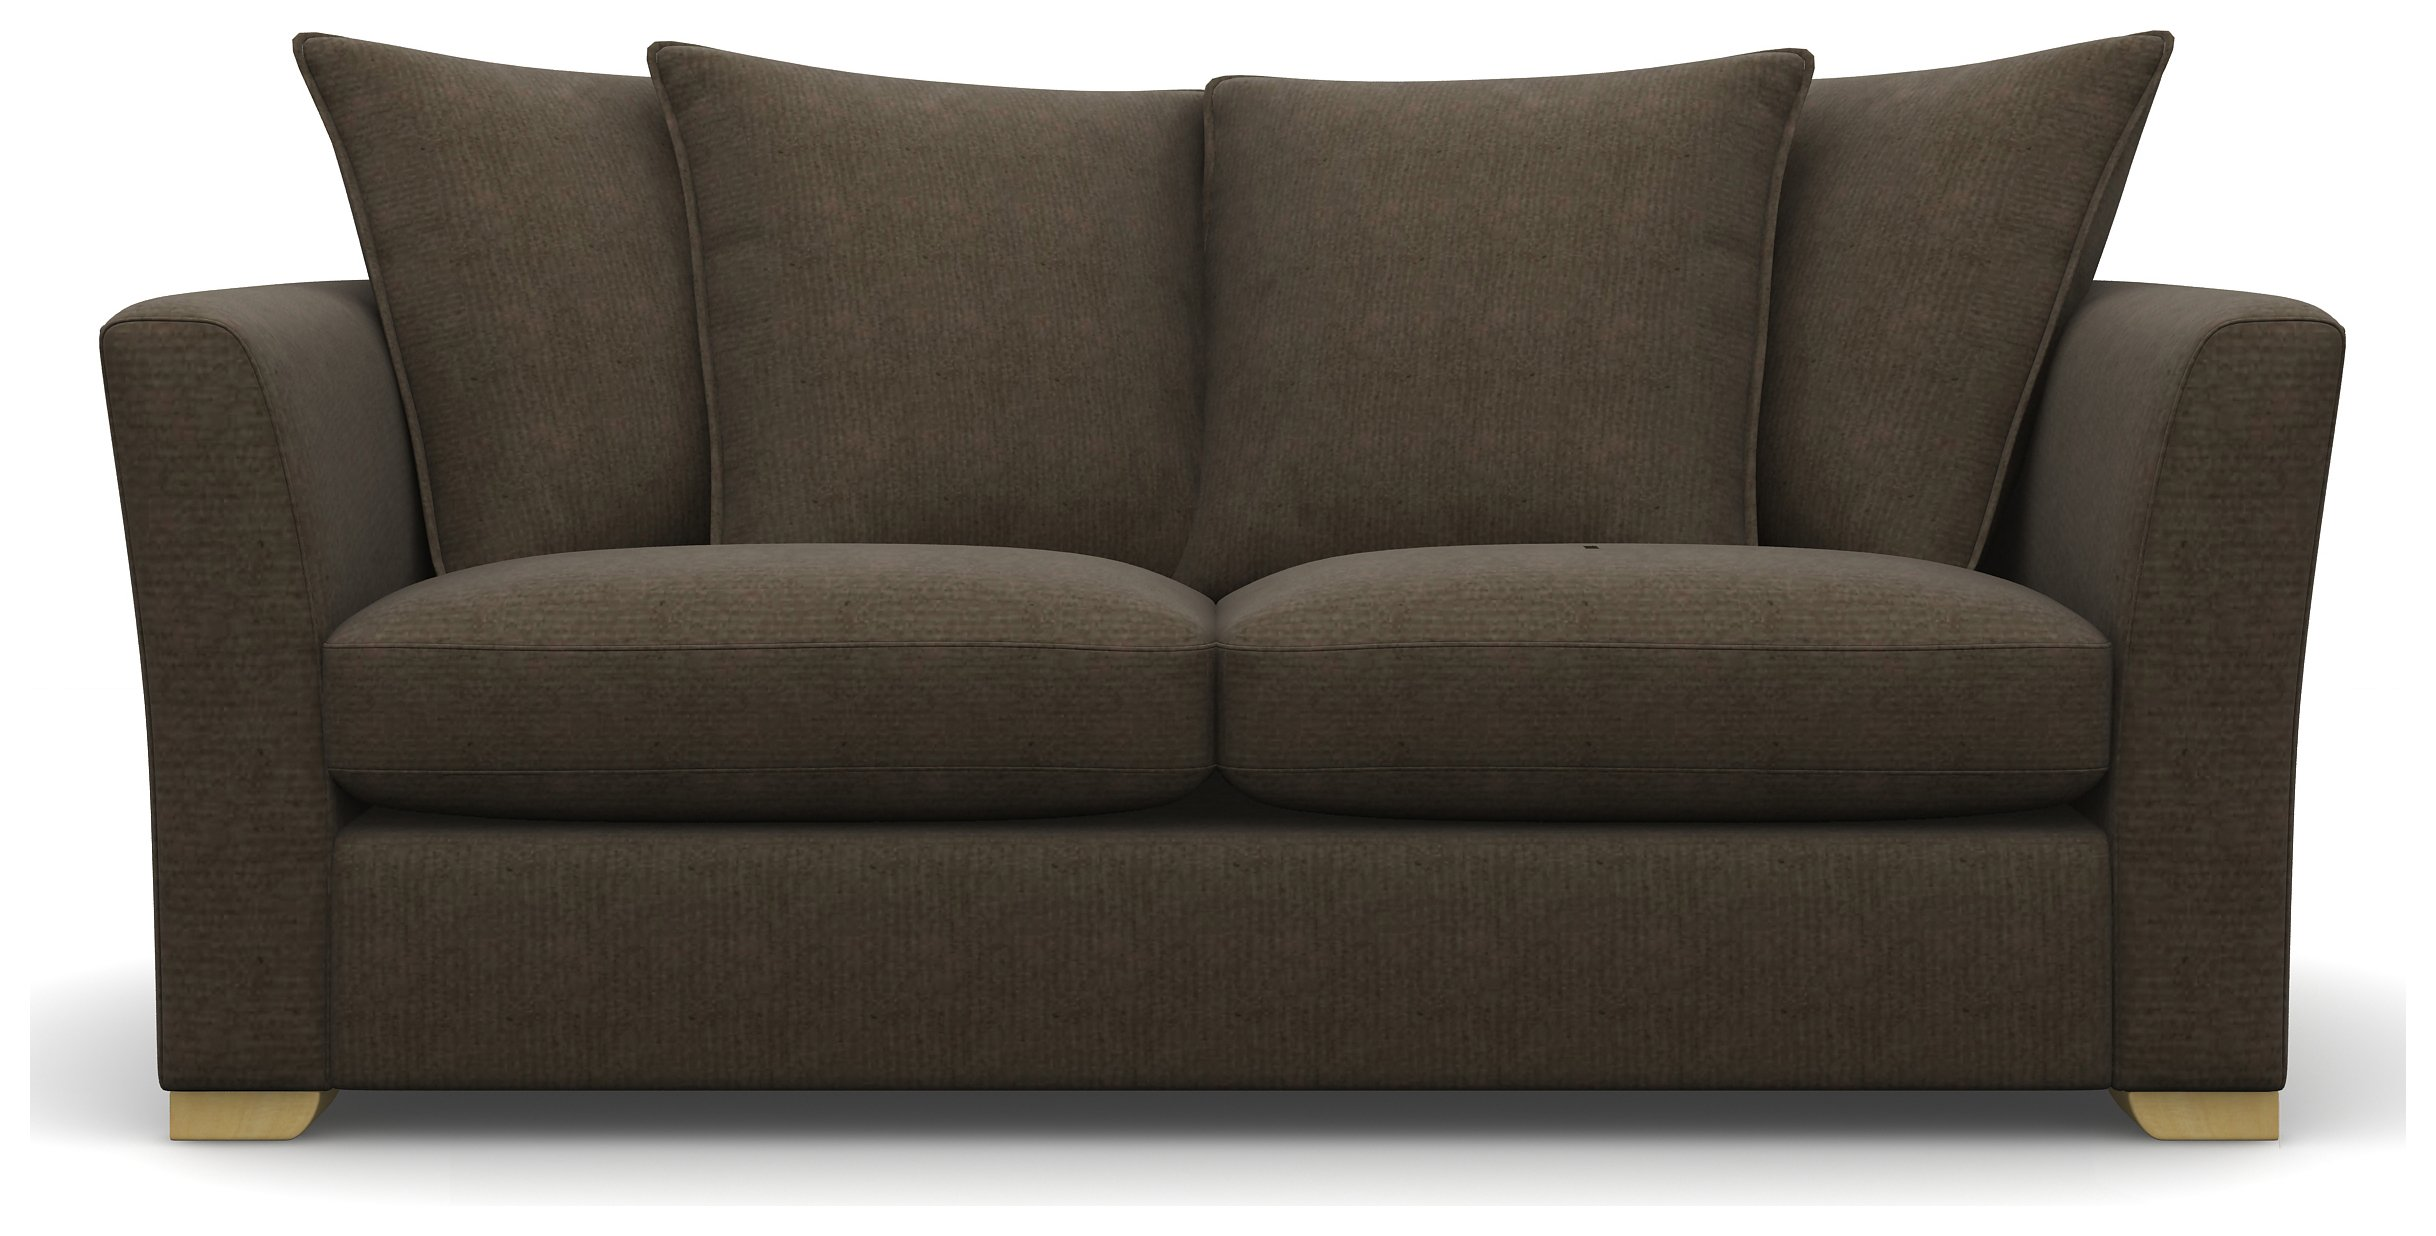 Heart of House Libby 2 Seater Fabric Sofa - Dark Chocolate